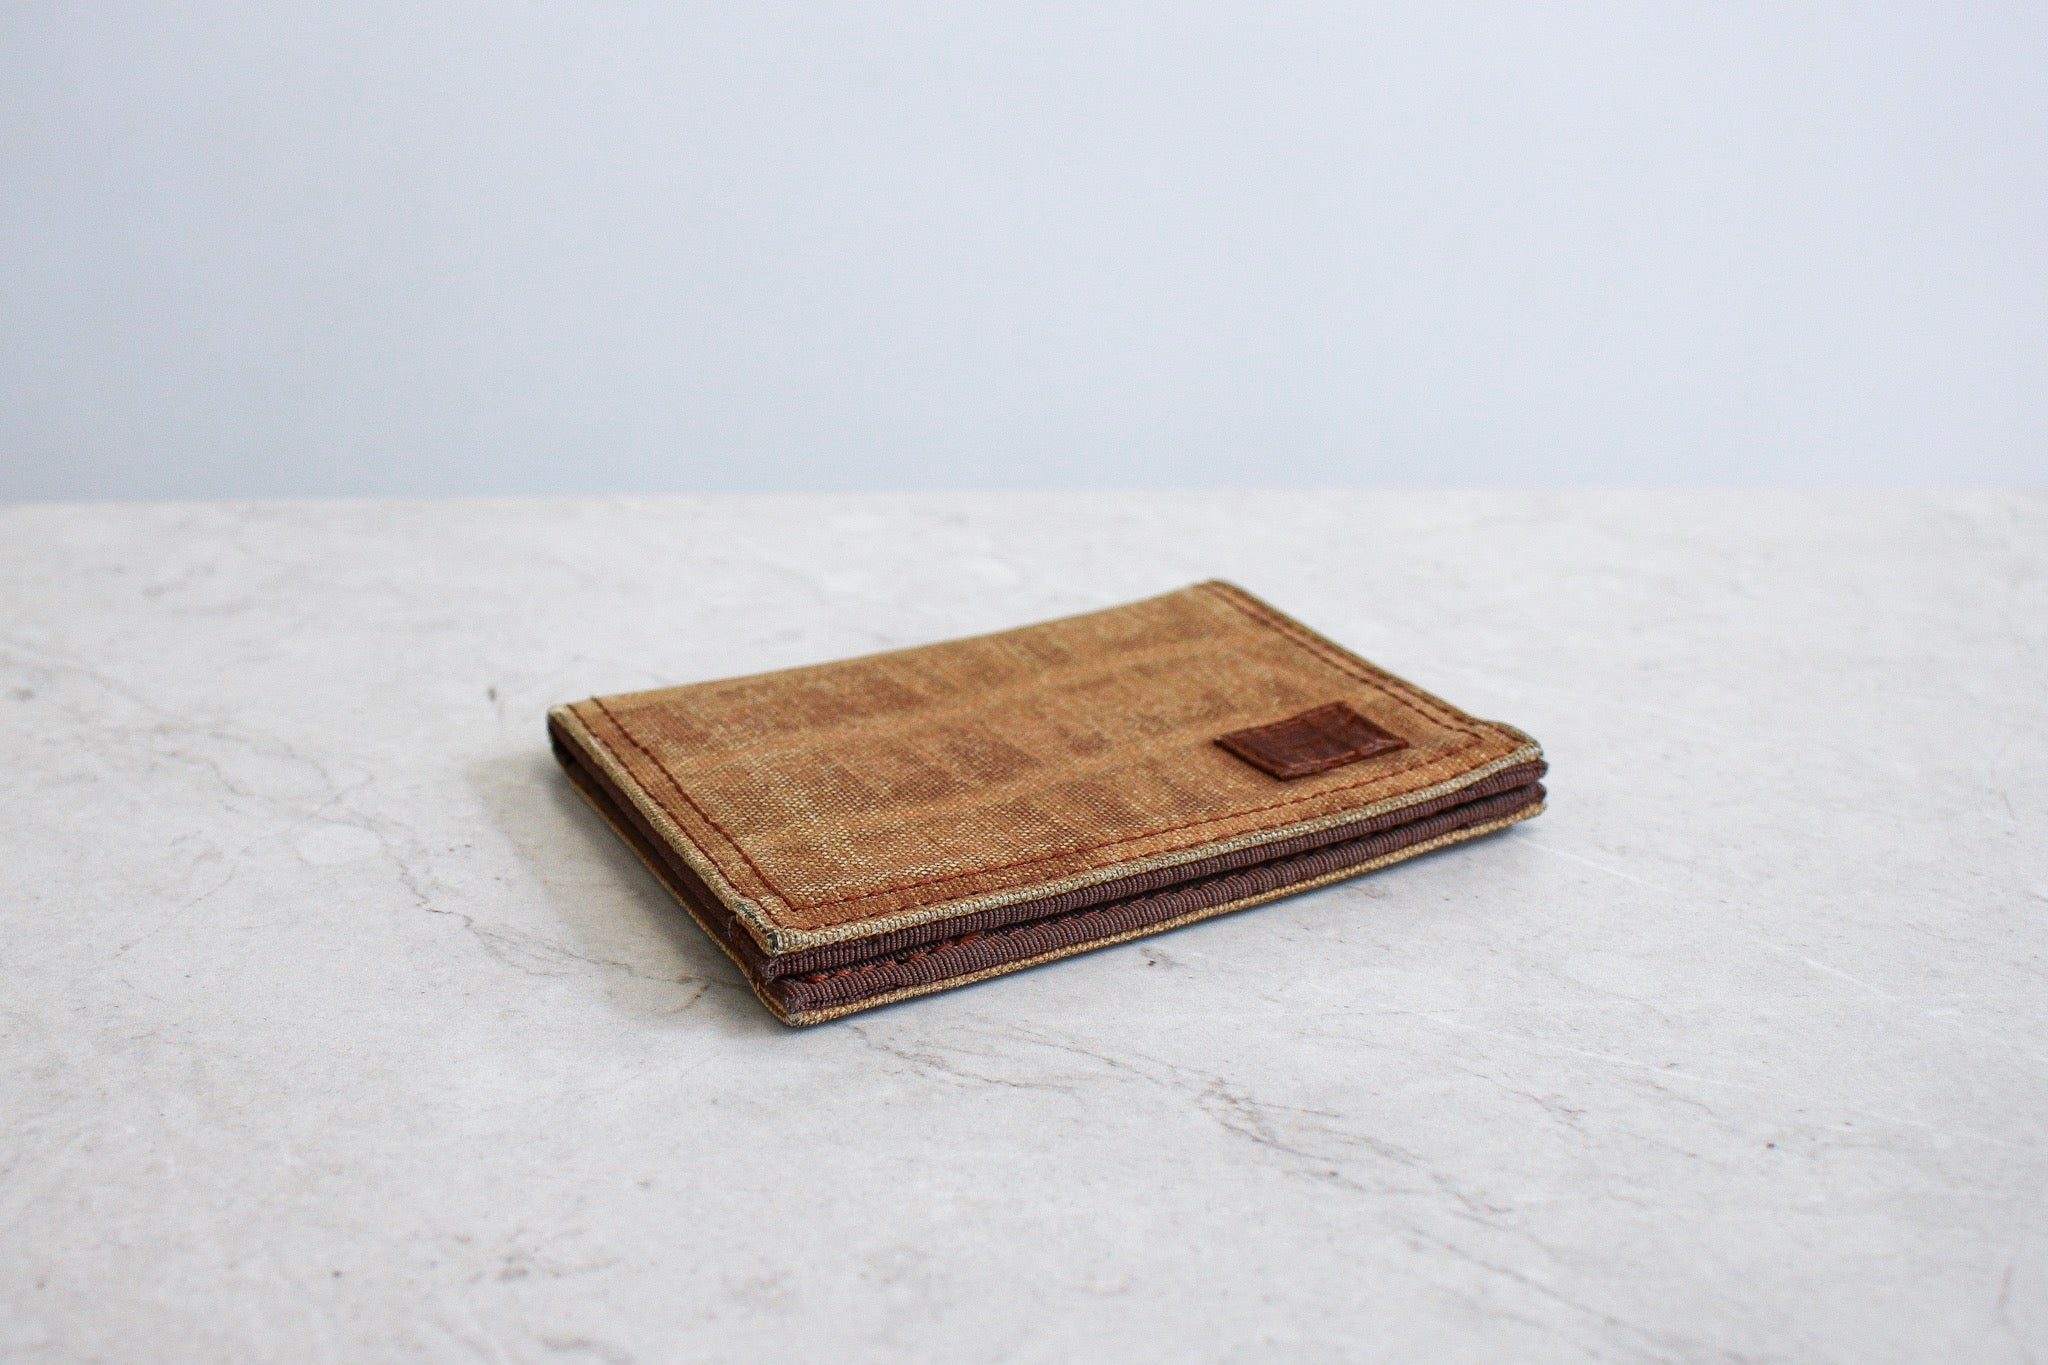 Porter-Yoshida & Co Card Wallet